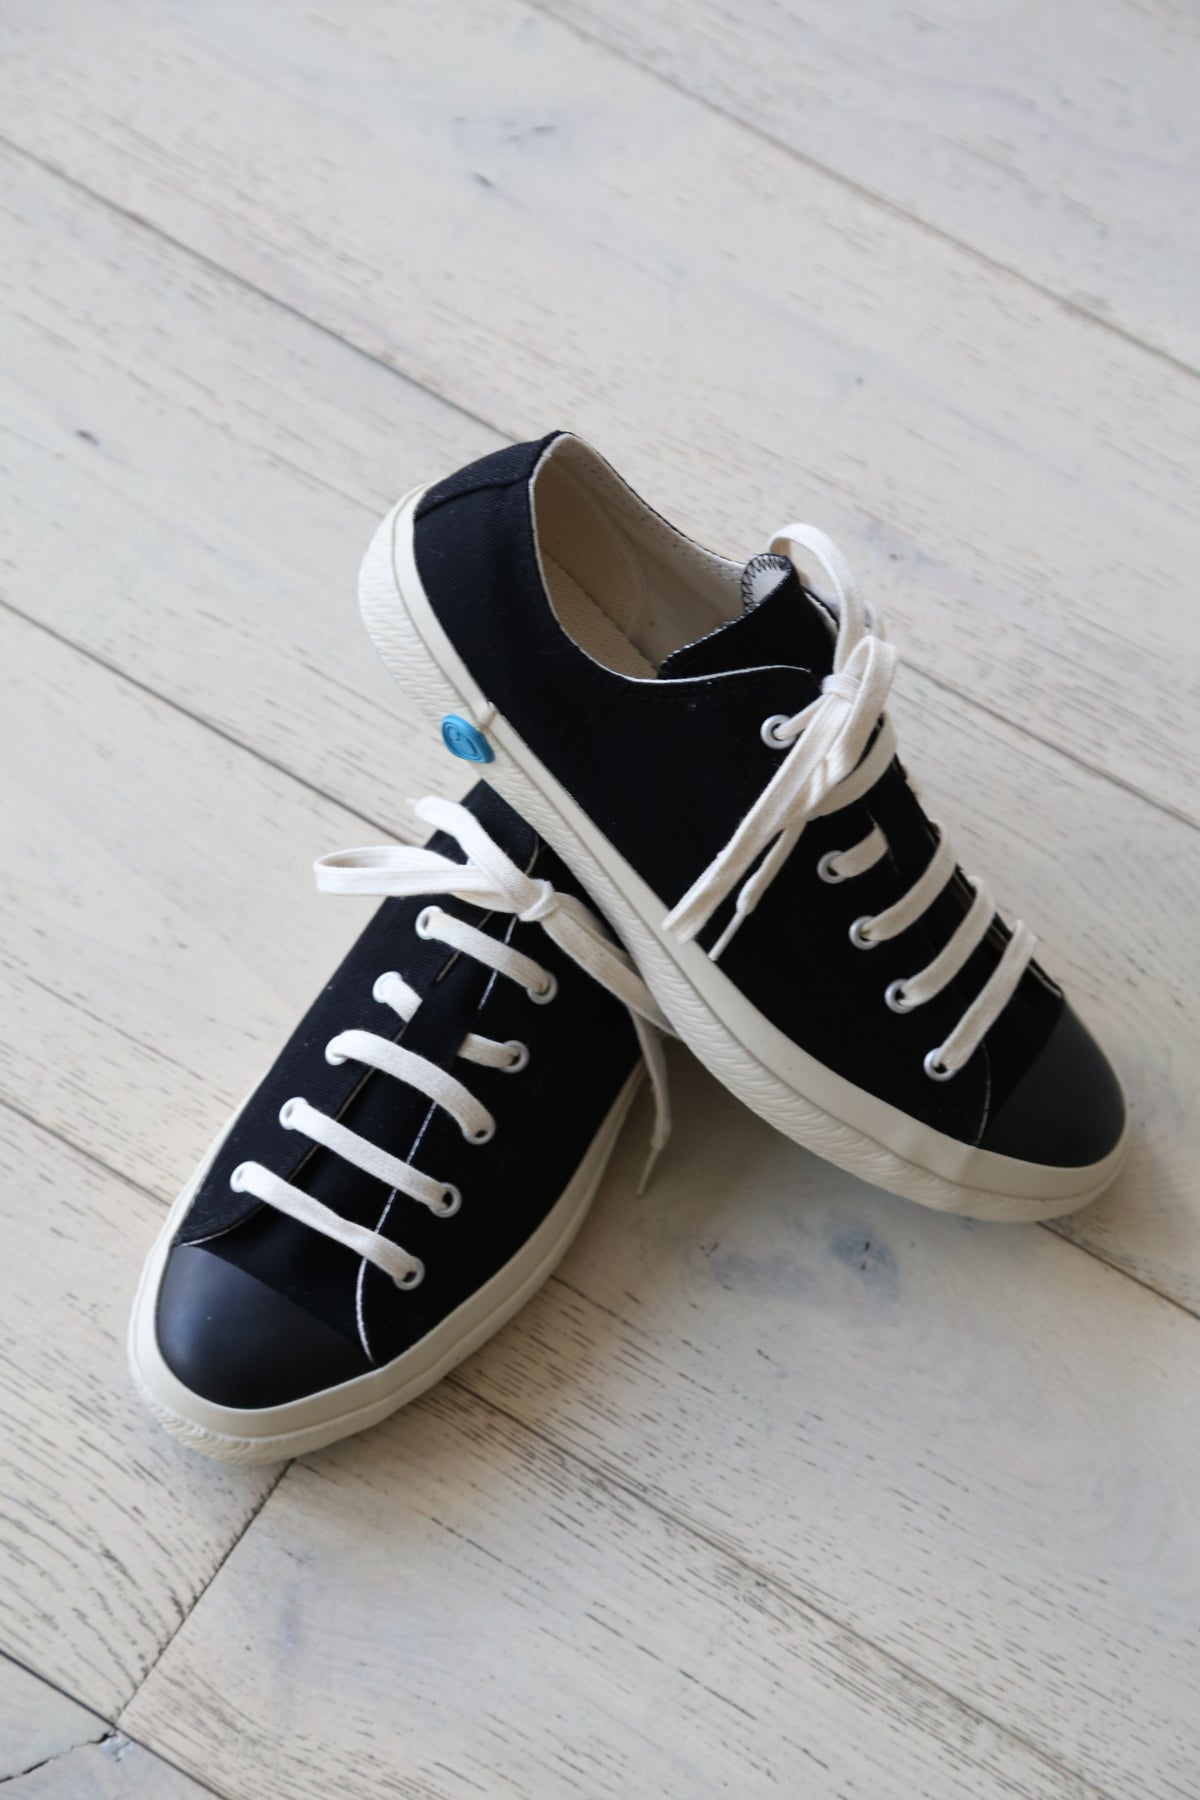 Shoes Like Pottery Low Top Sneaker Black